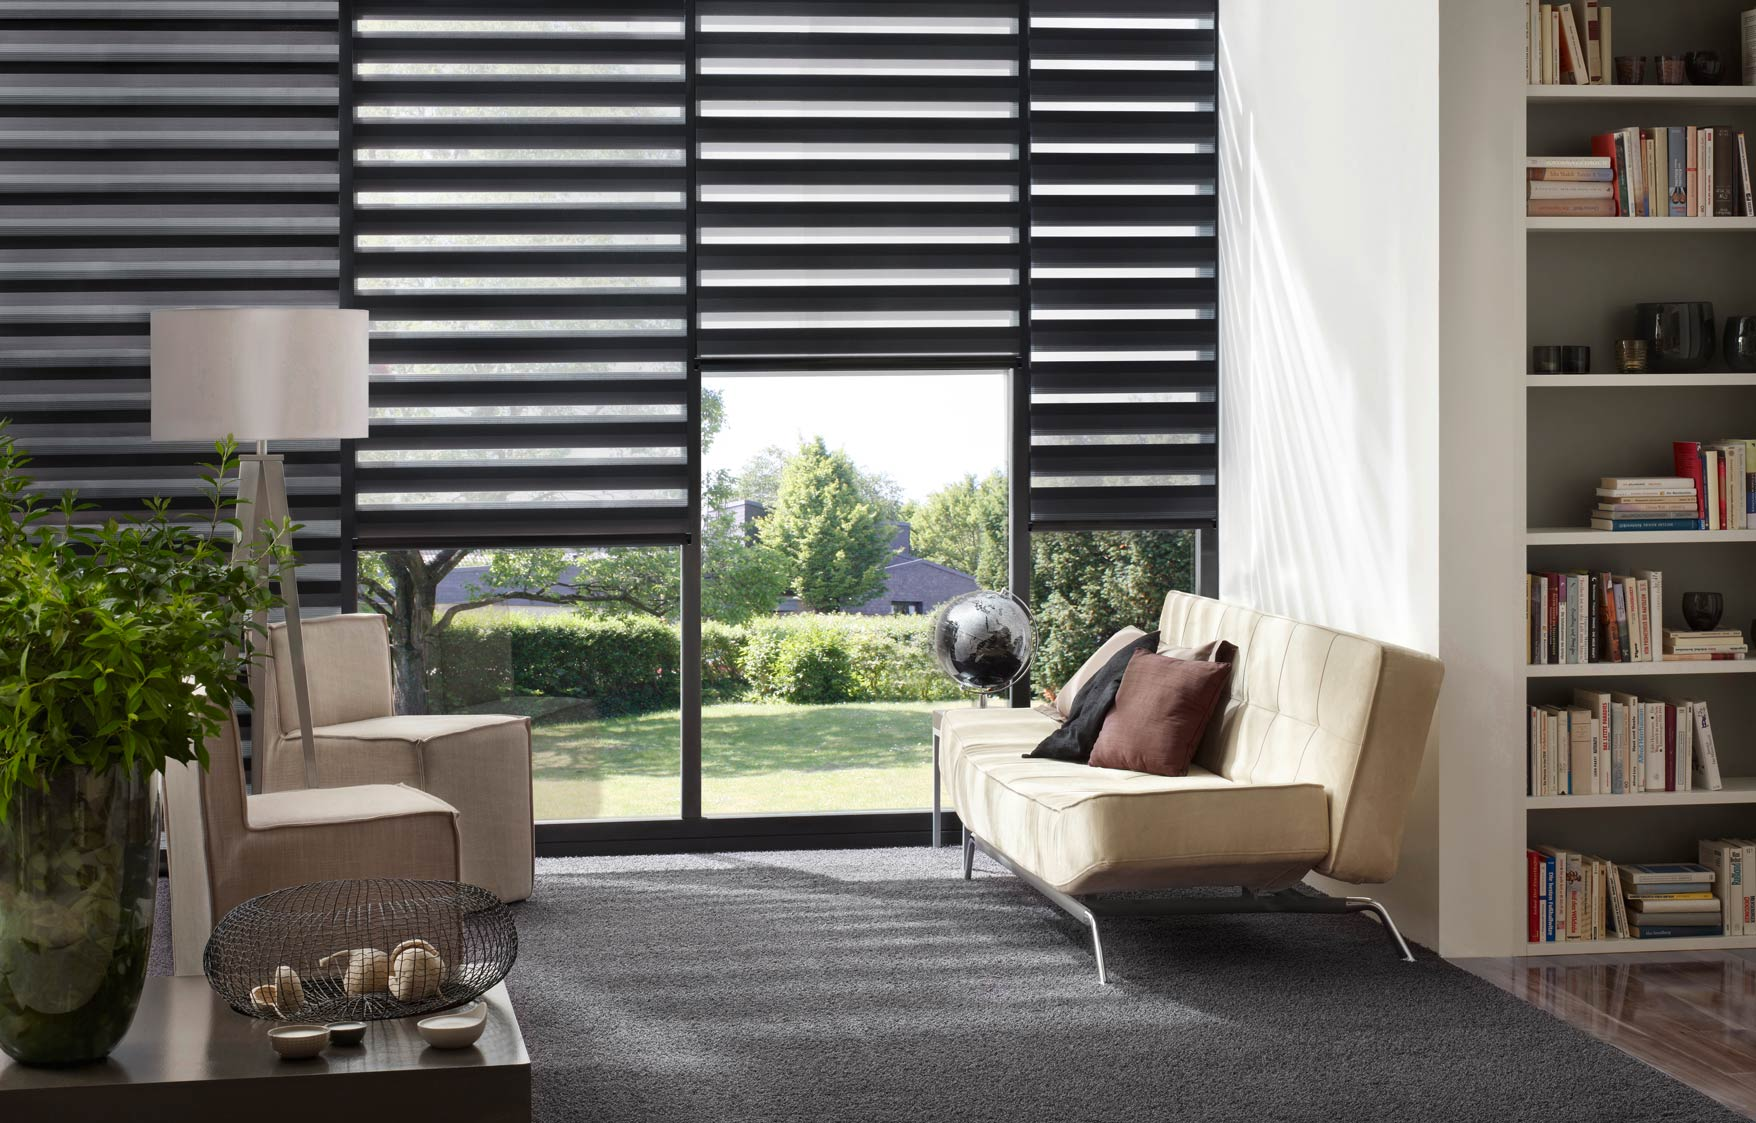 Interior of Modern Room with Blinds